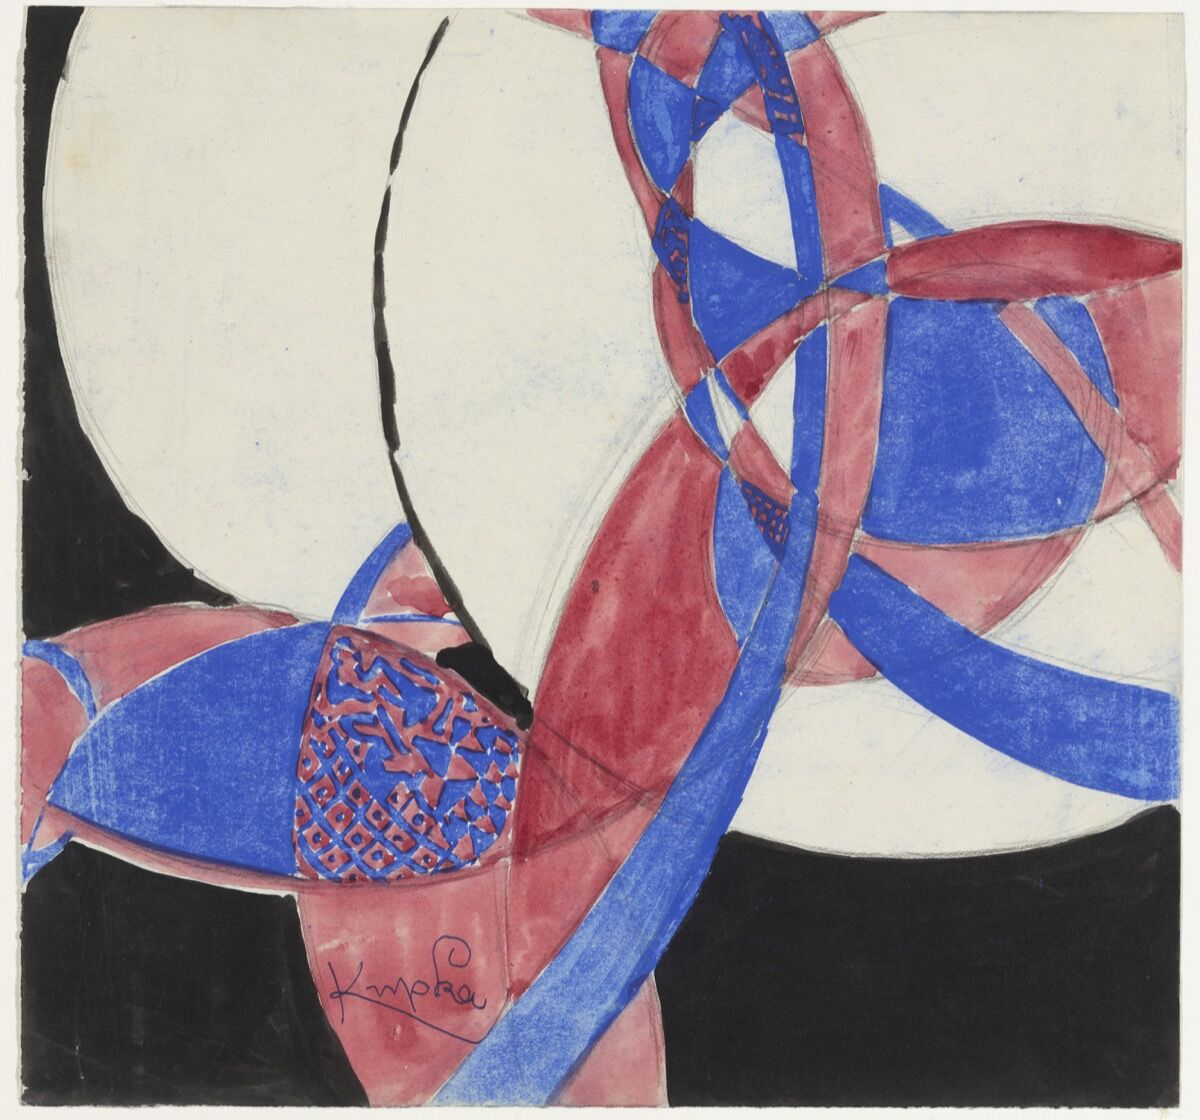 František Kupka, Amorpha: Fugue in Two Colors, 1912. Courtesy of The Museum of Modern Art, NY. © 2017 Artists Rights Society (ARS), New York / ADAGP, Paris.